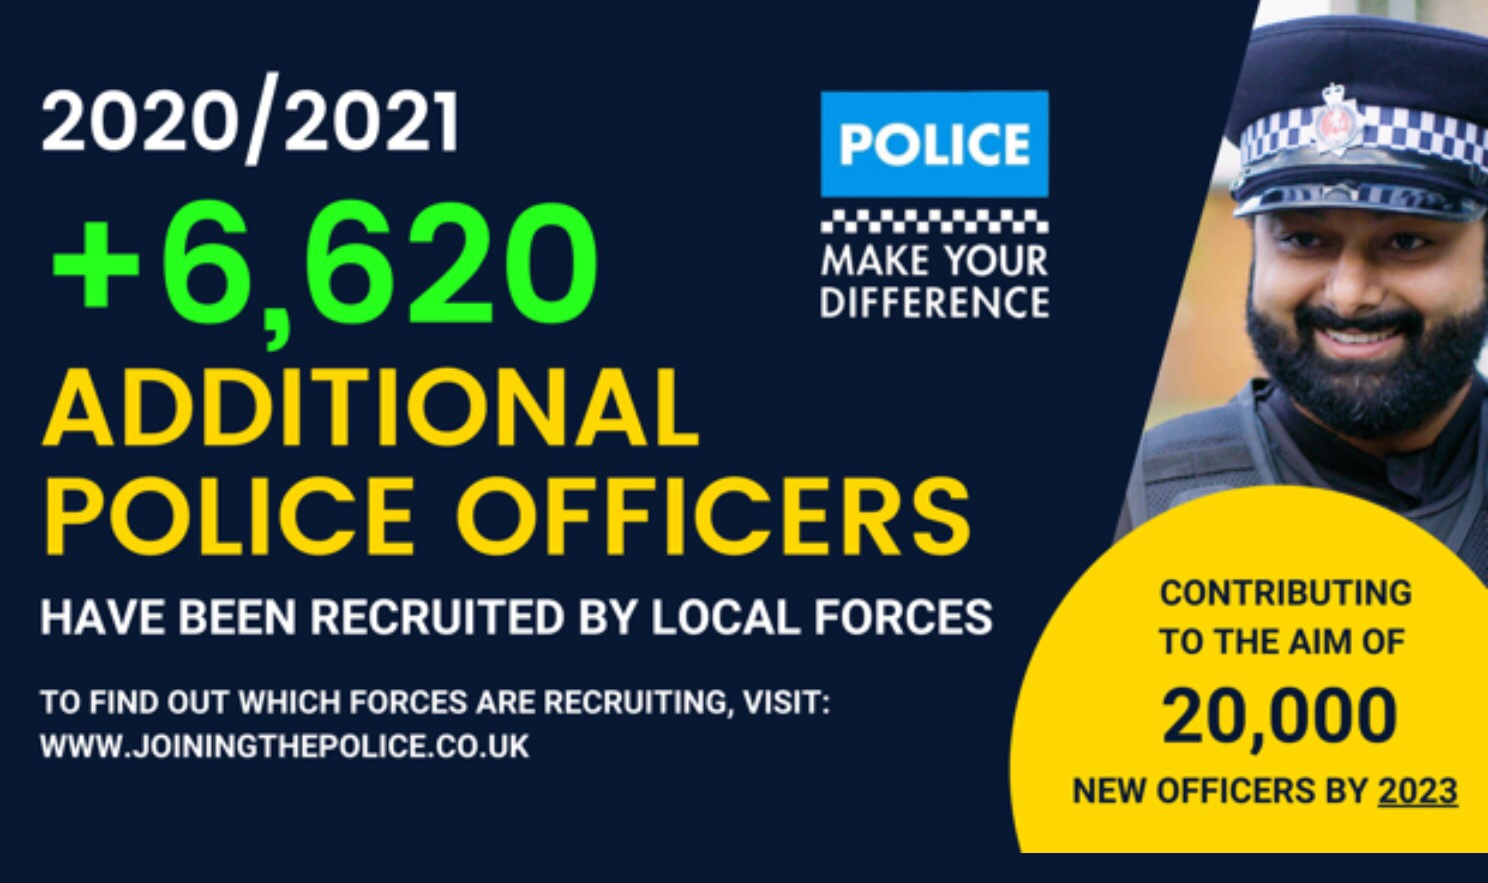 The Police Uplift Programme